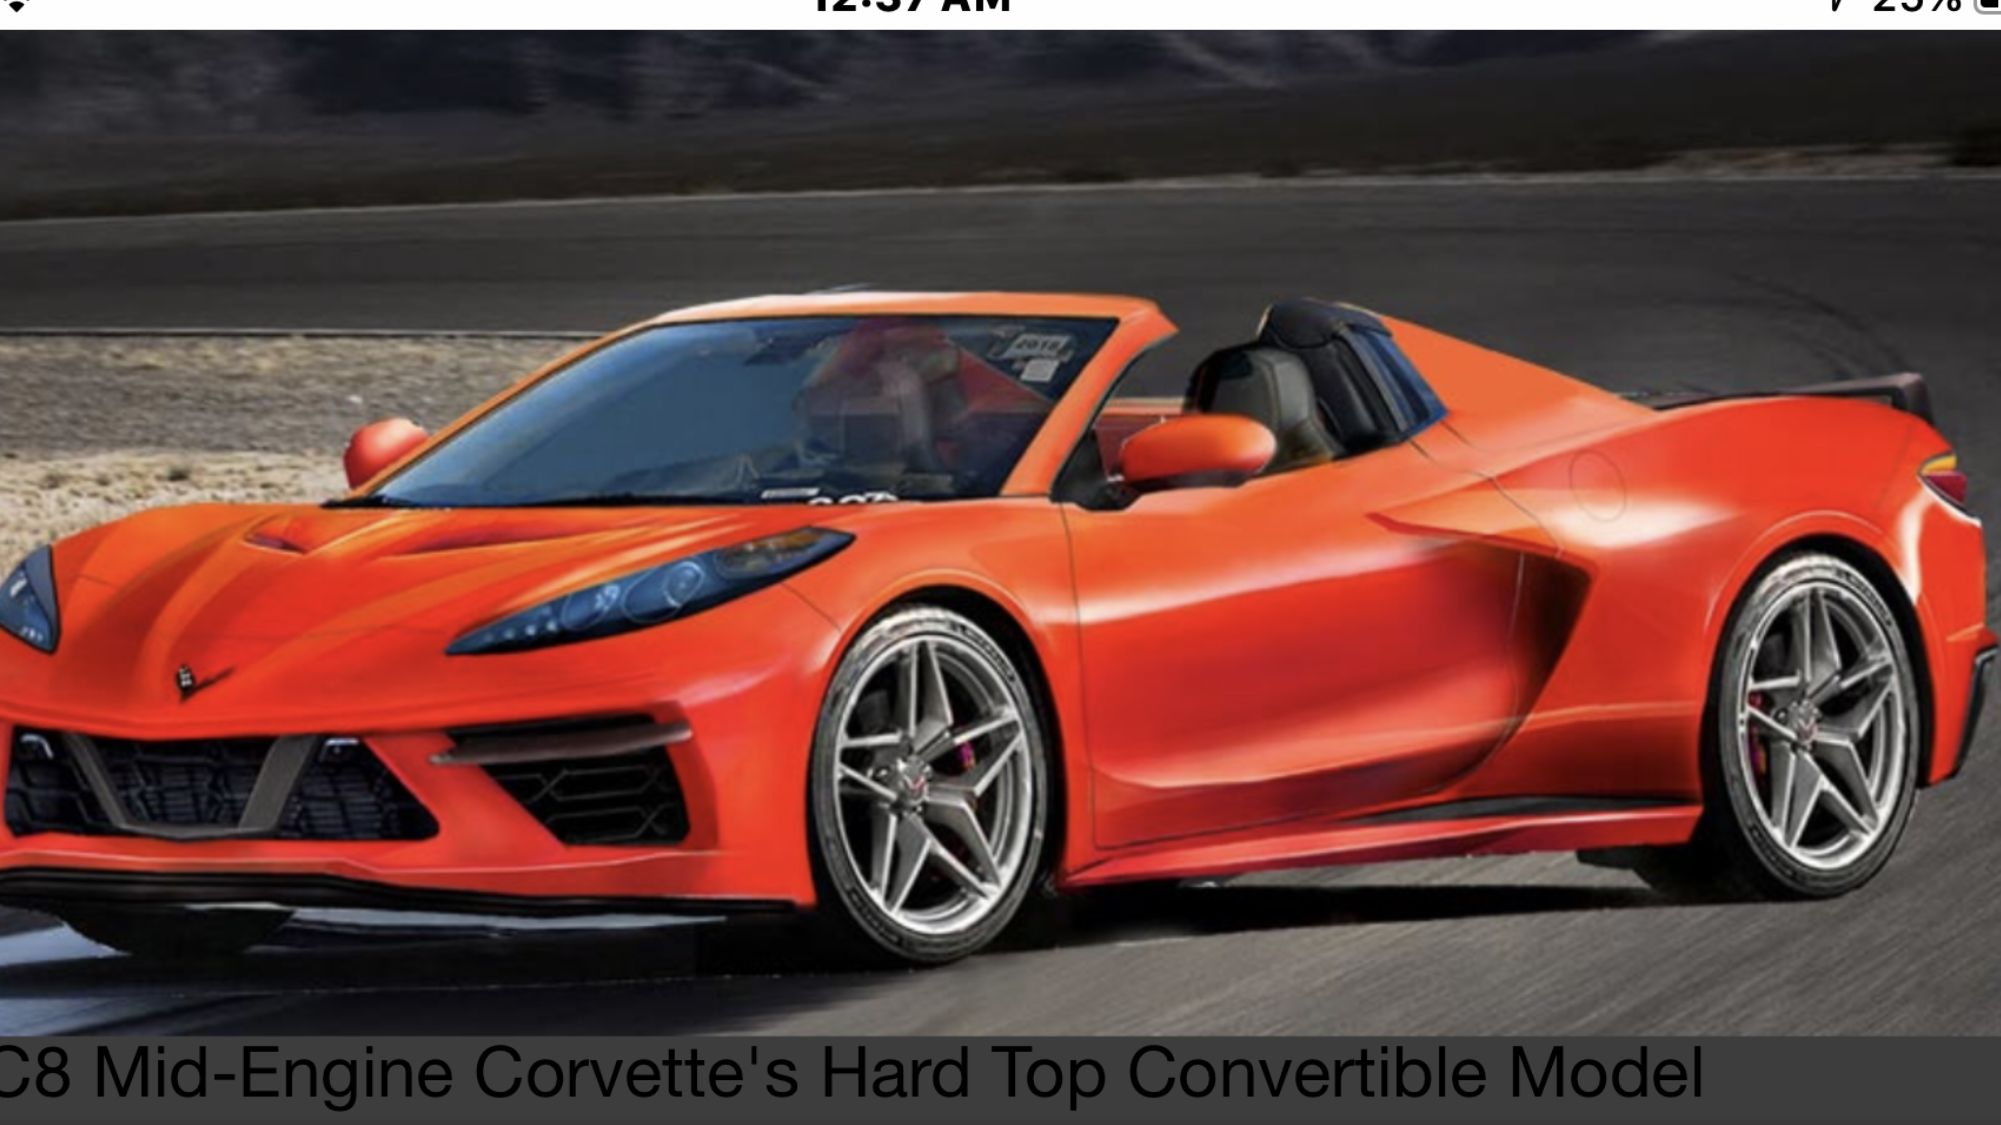 Pin By Mike Oaks On Corvette C8 Newest Nemesis Corvette Chevrolet Corvette Corvette Stingray